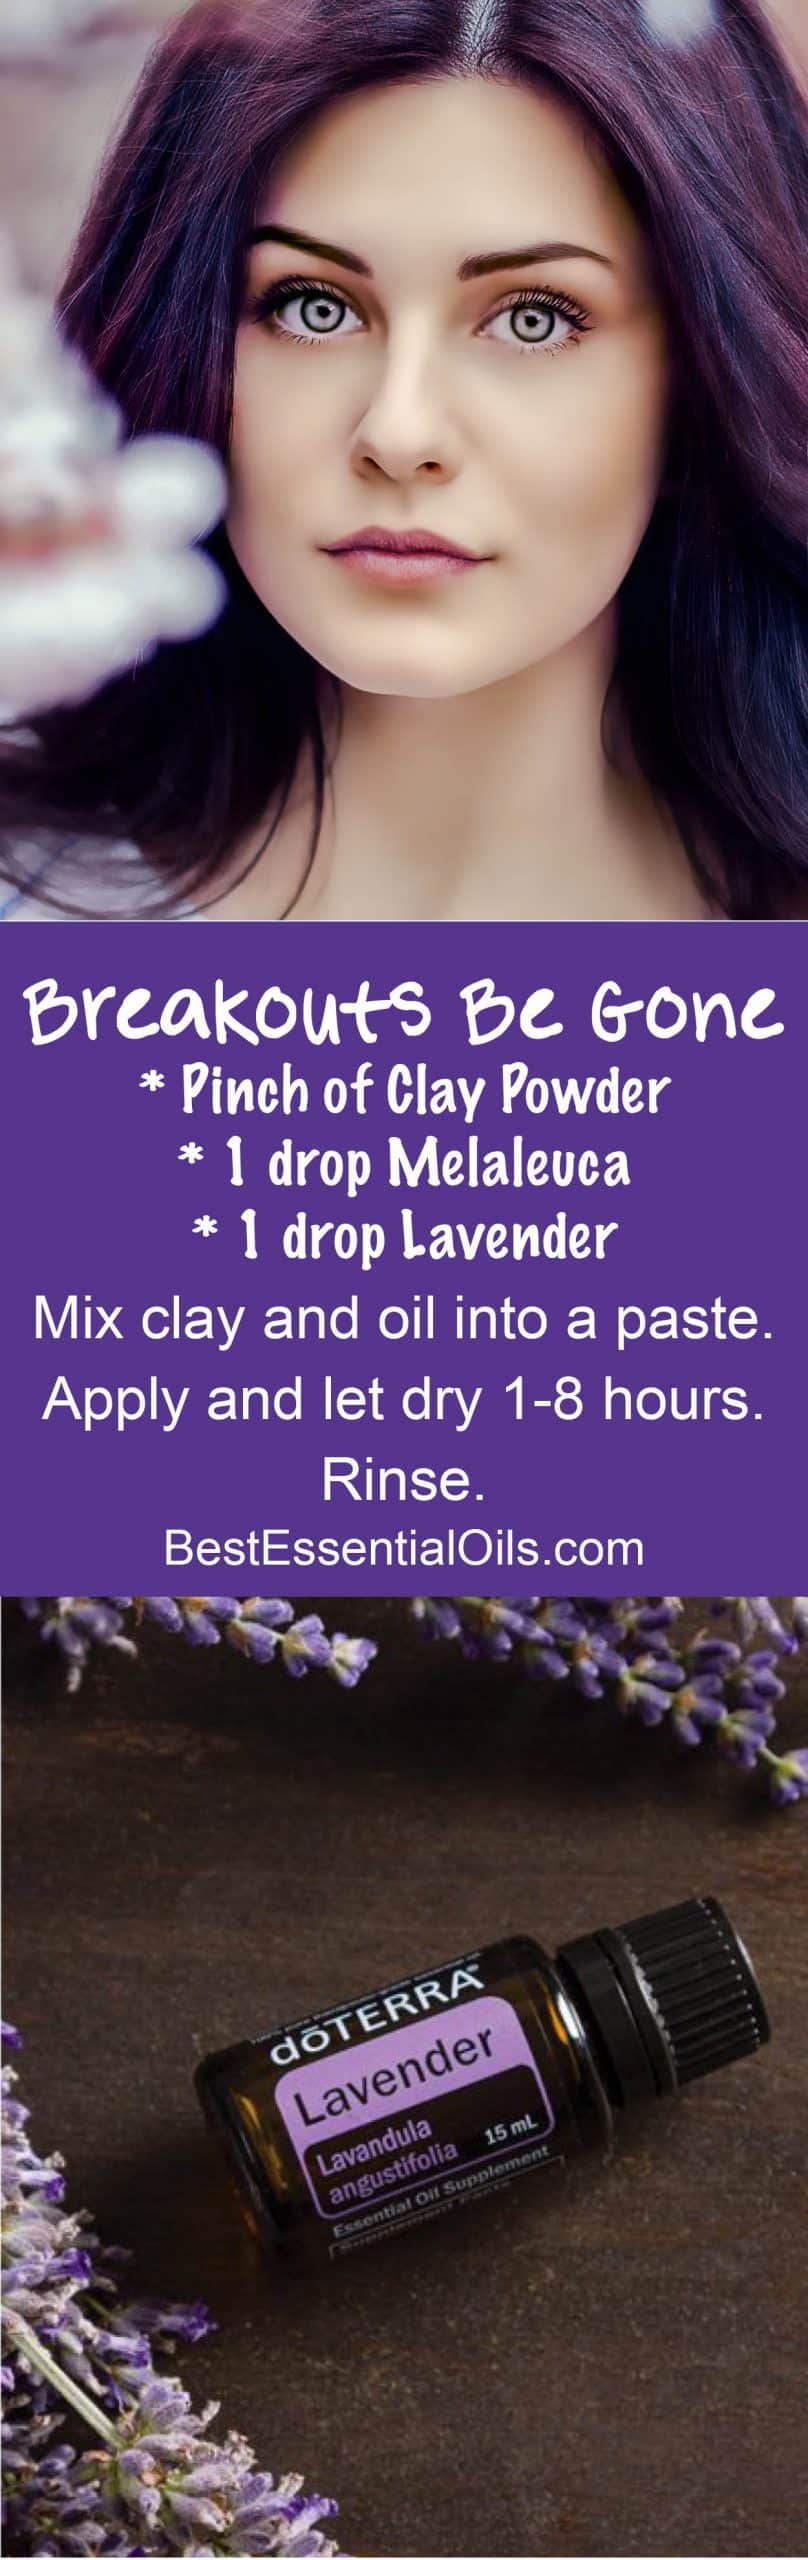 doTERRA Breakouts Be Gone Paste